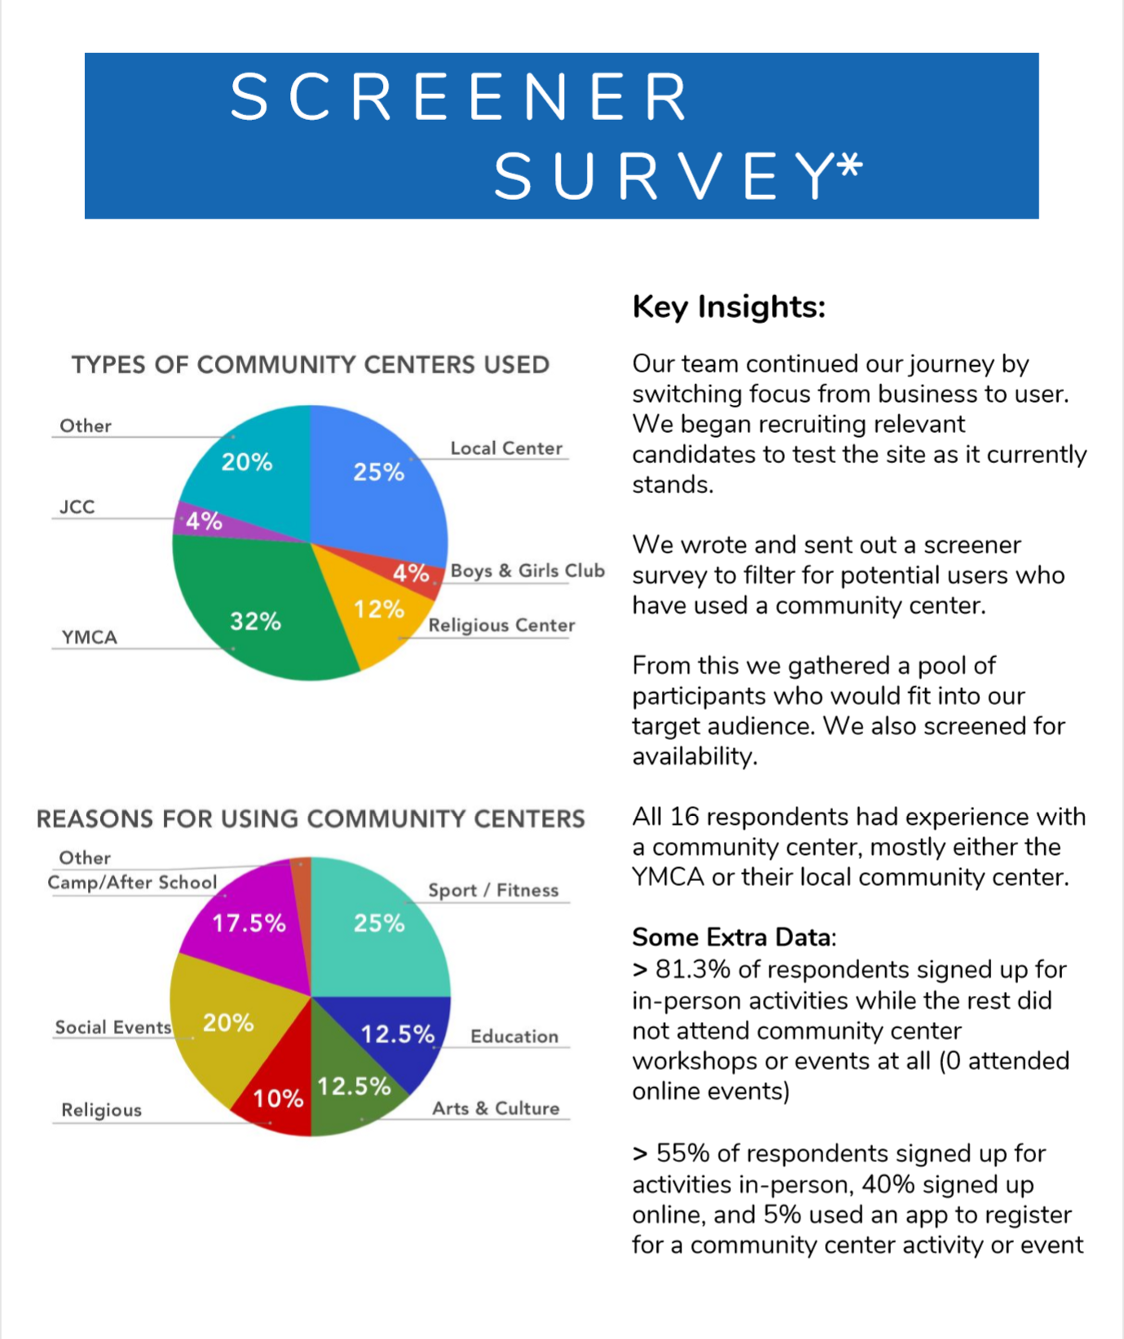 Screener Survey - After our business assessment, we used a screener survey to pool for users who fit our target demographic as community center attendees.